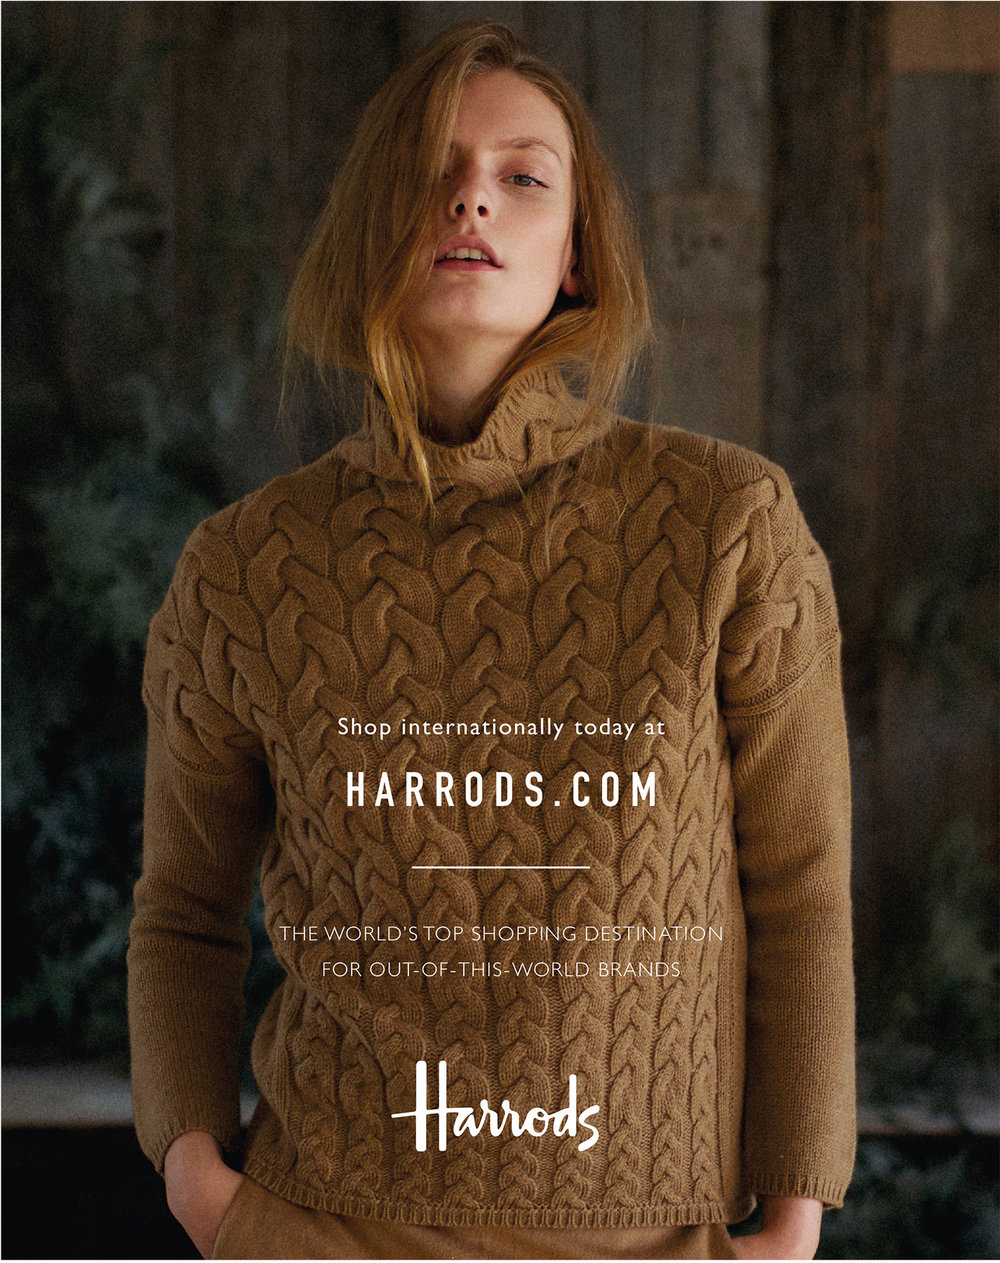 088-icon-artist-management-Kristin-Vicari-Commissions-Harrods.jpg